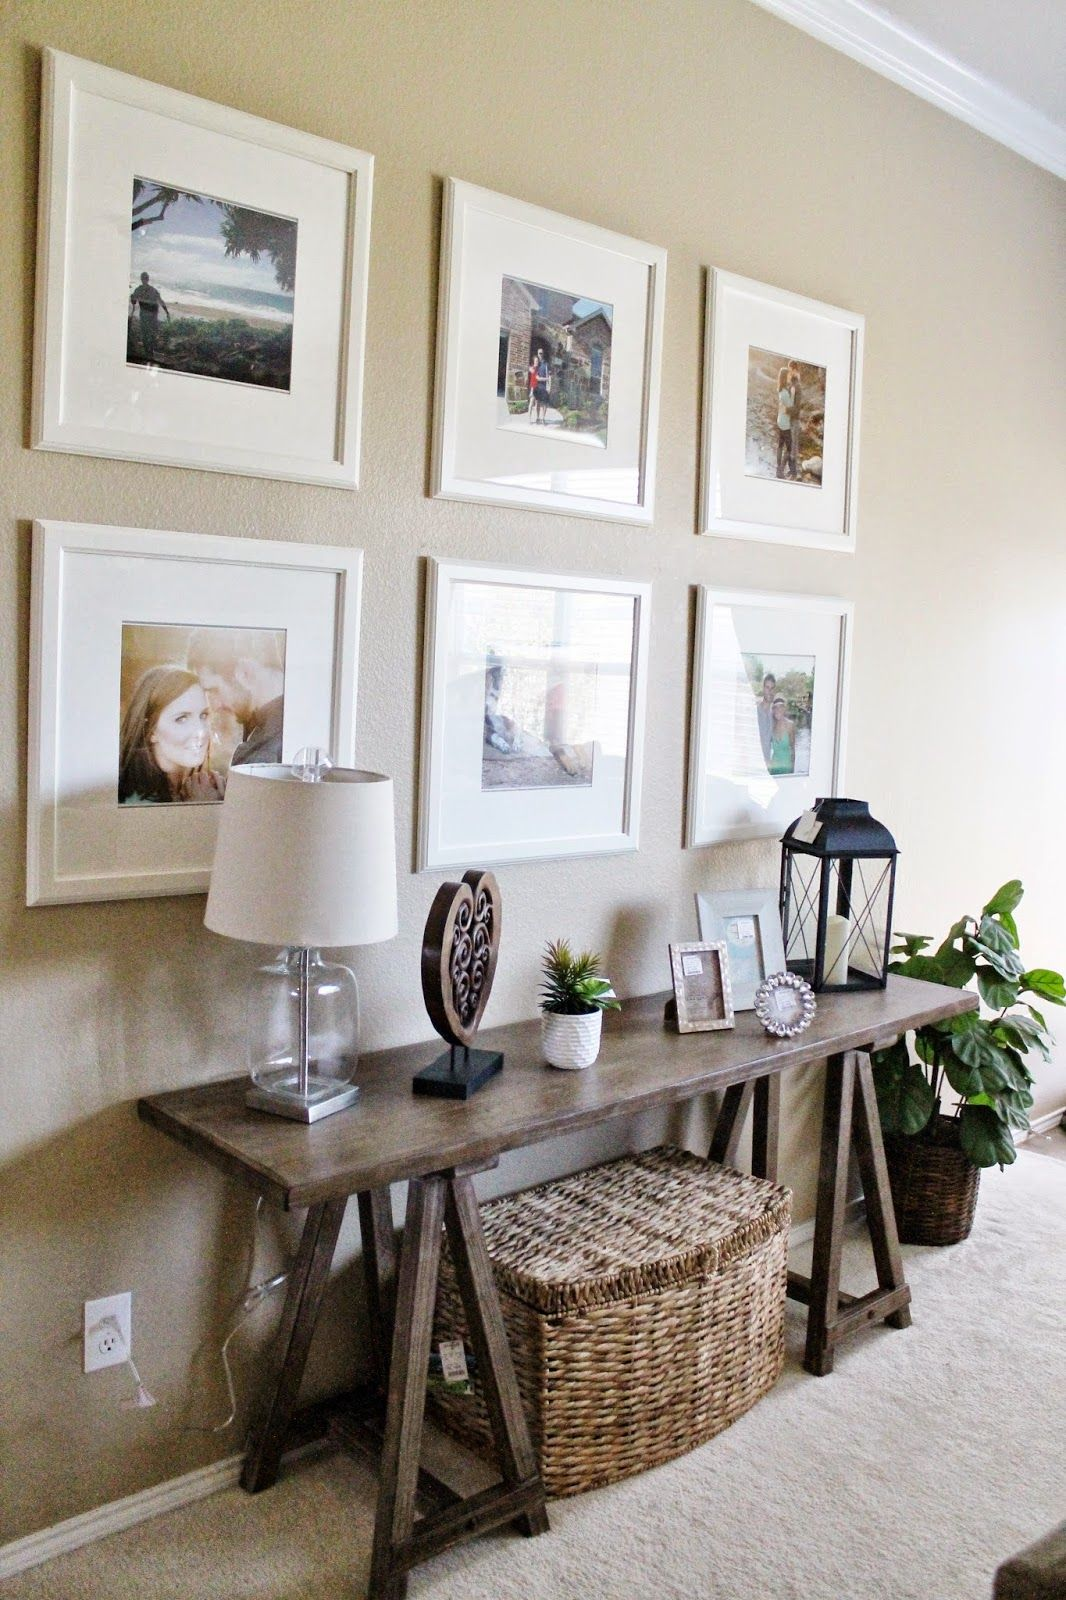 living room decorating ideas picture frames glass tables for decor ikea frame gallery wall sofa table tucker up blog